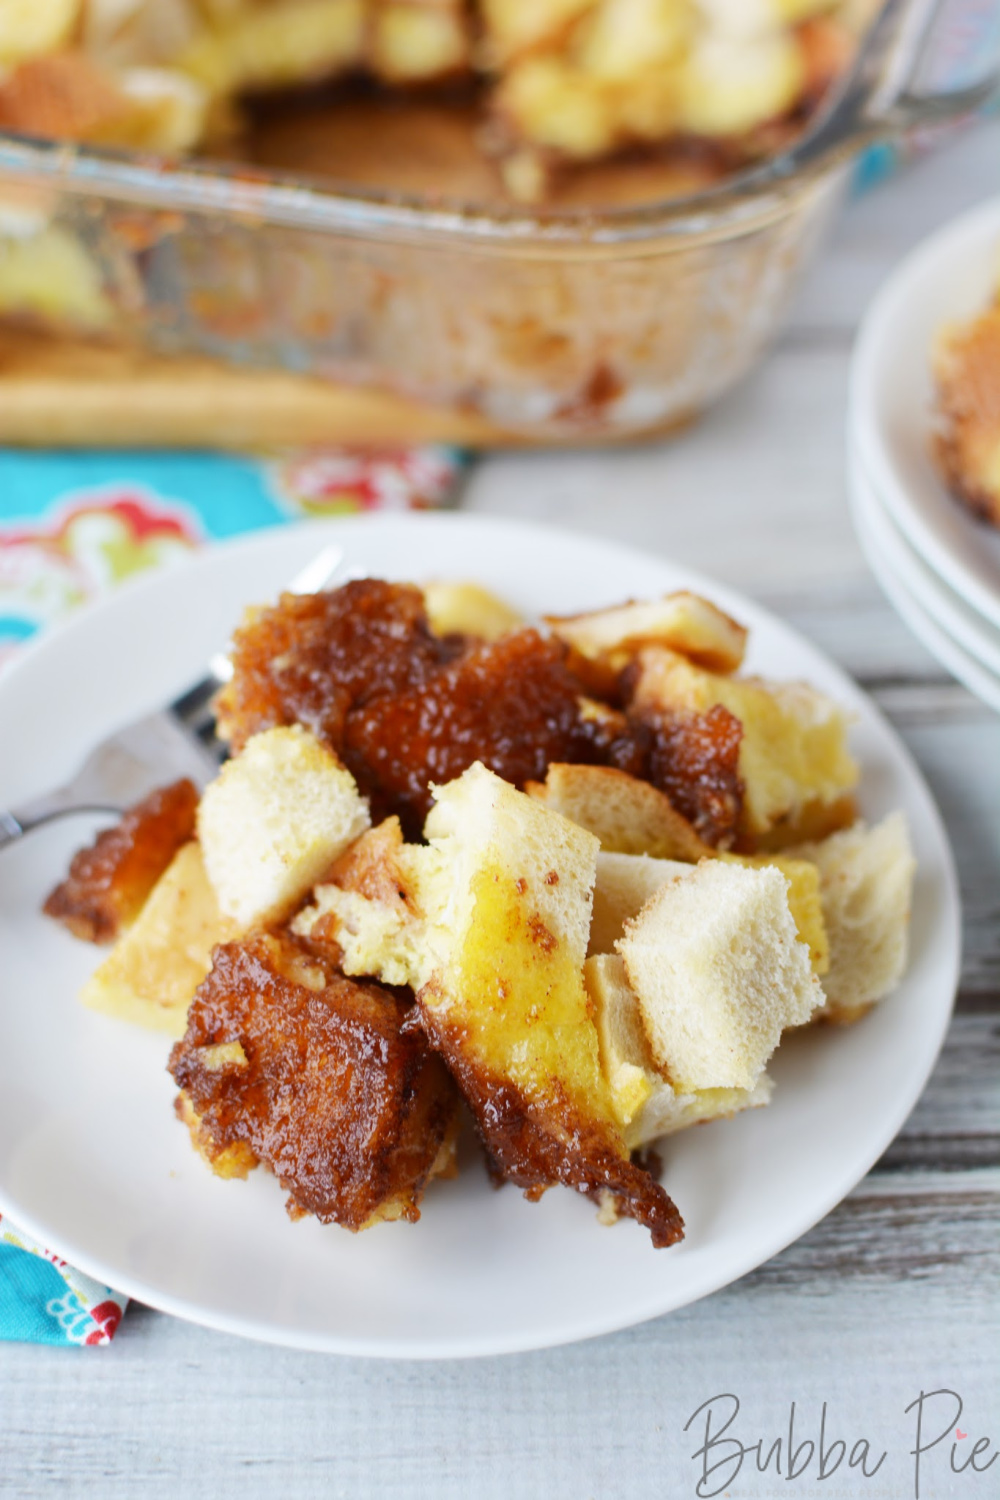 French Toast Bake Recipe is made with eggs, cinnamon and brown sugar